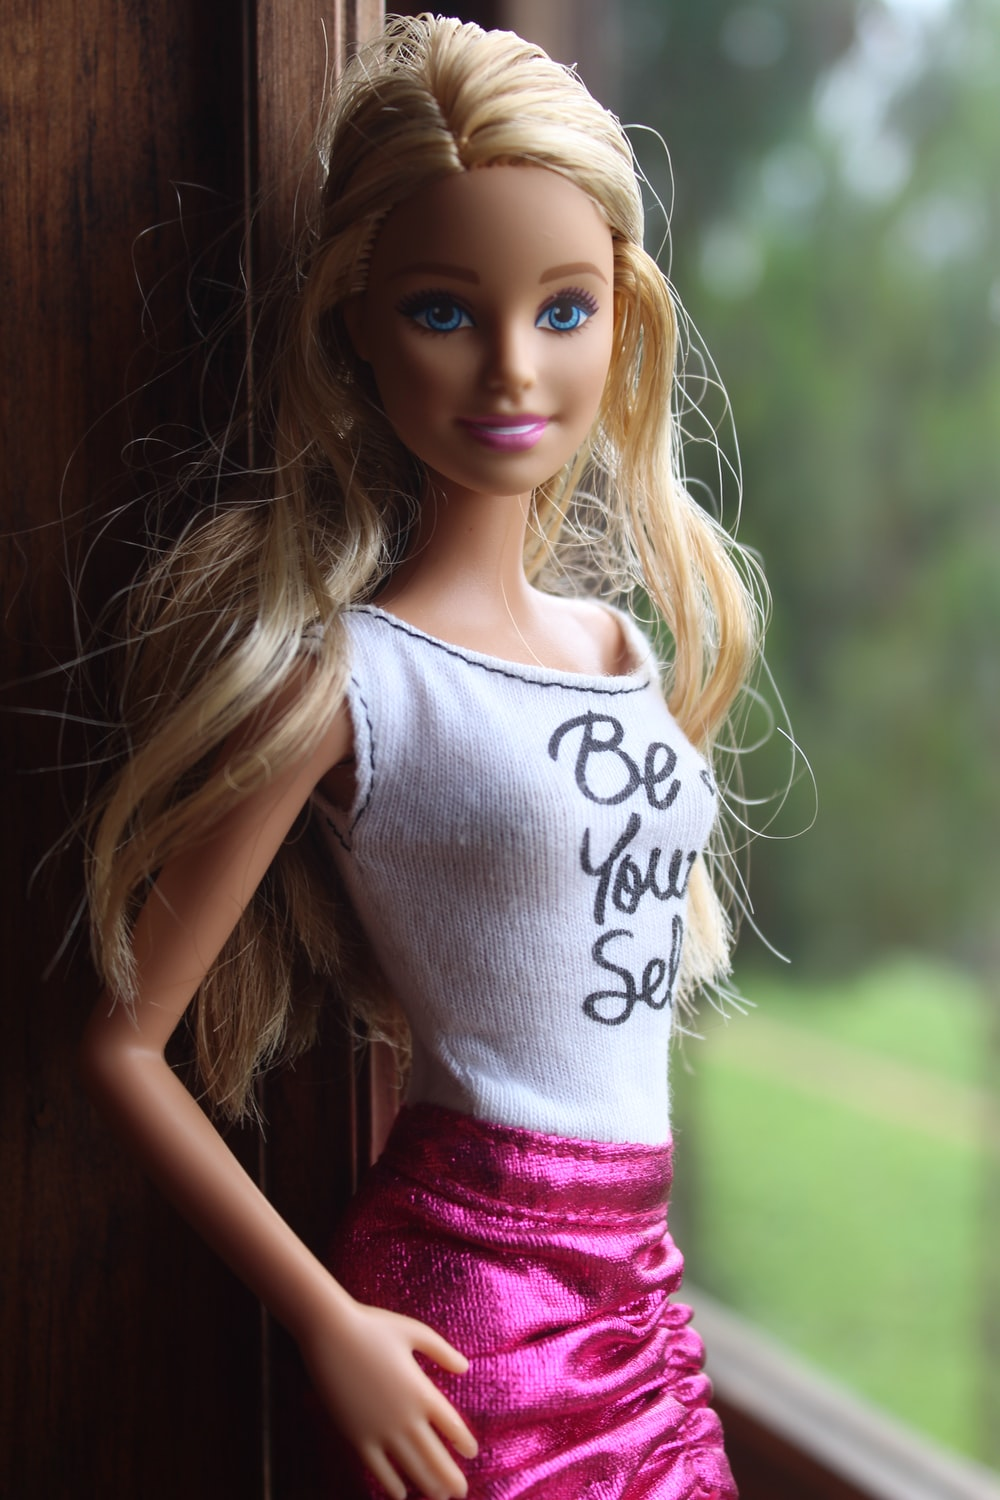 blonde-haitred Barbie doll photo